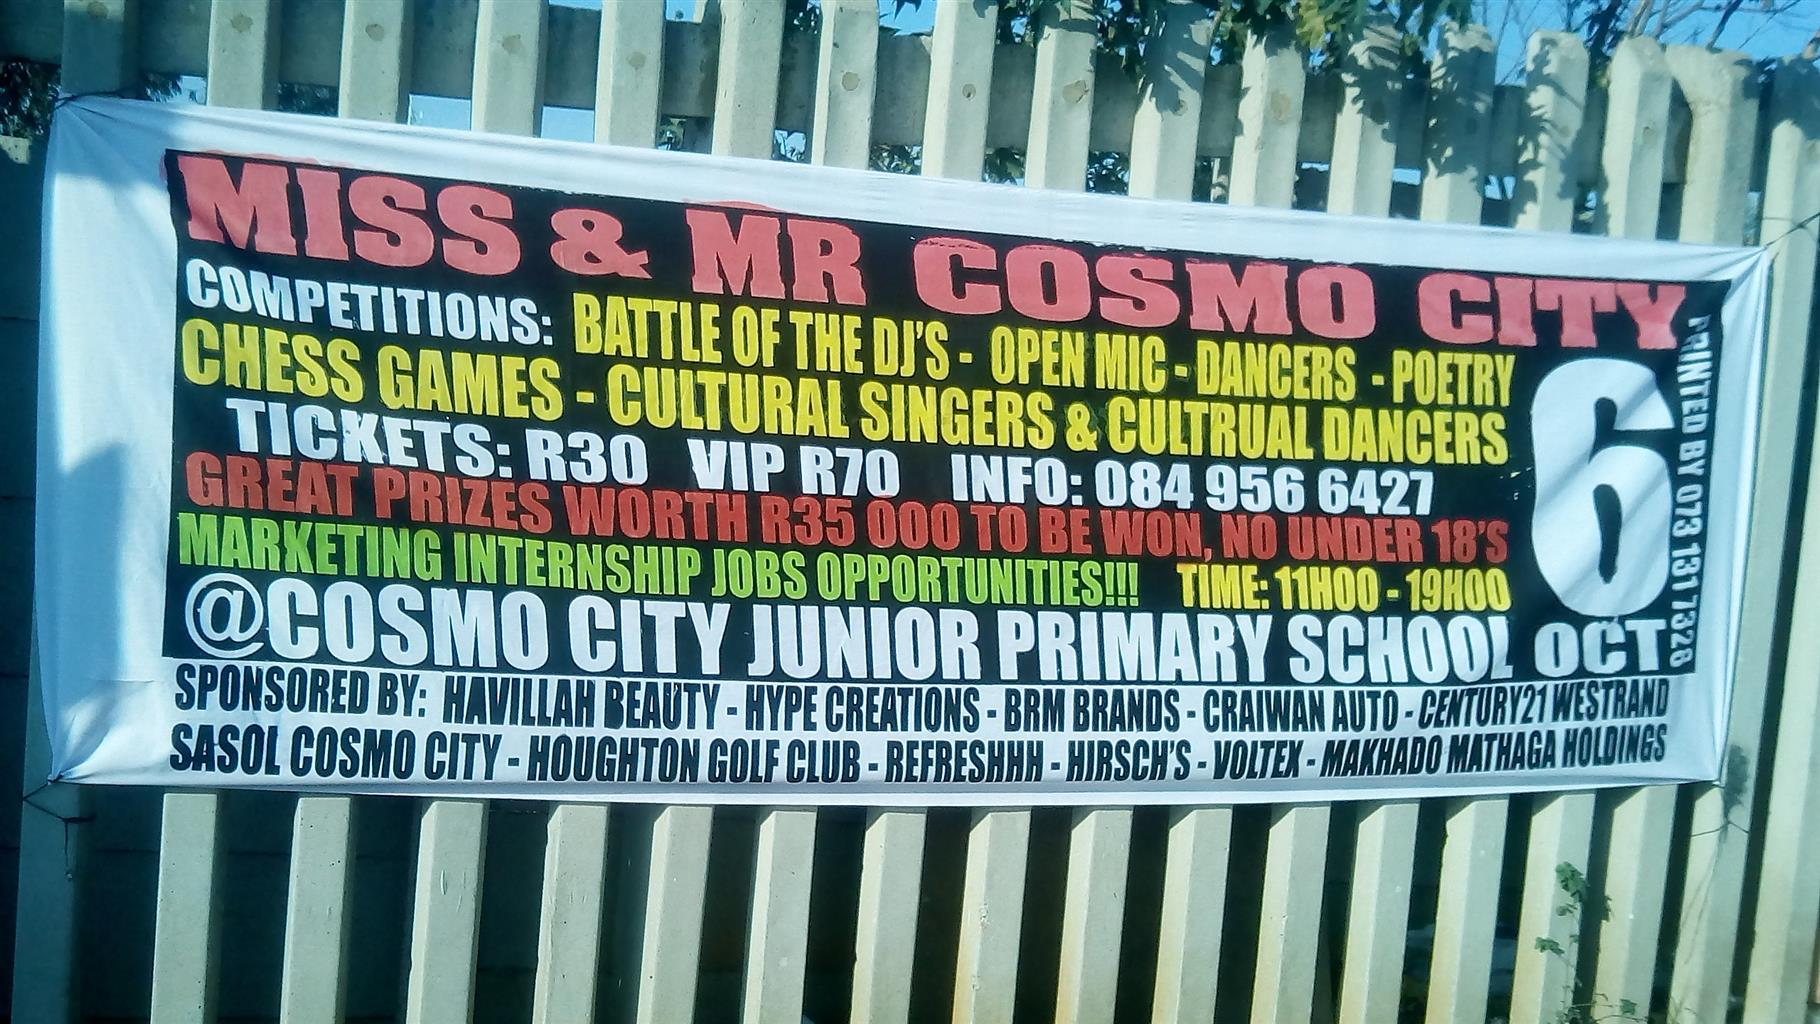 PRIZES FOR MISS & MR COSMO CITY 2018 WINNERS